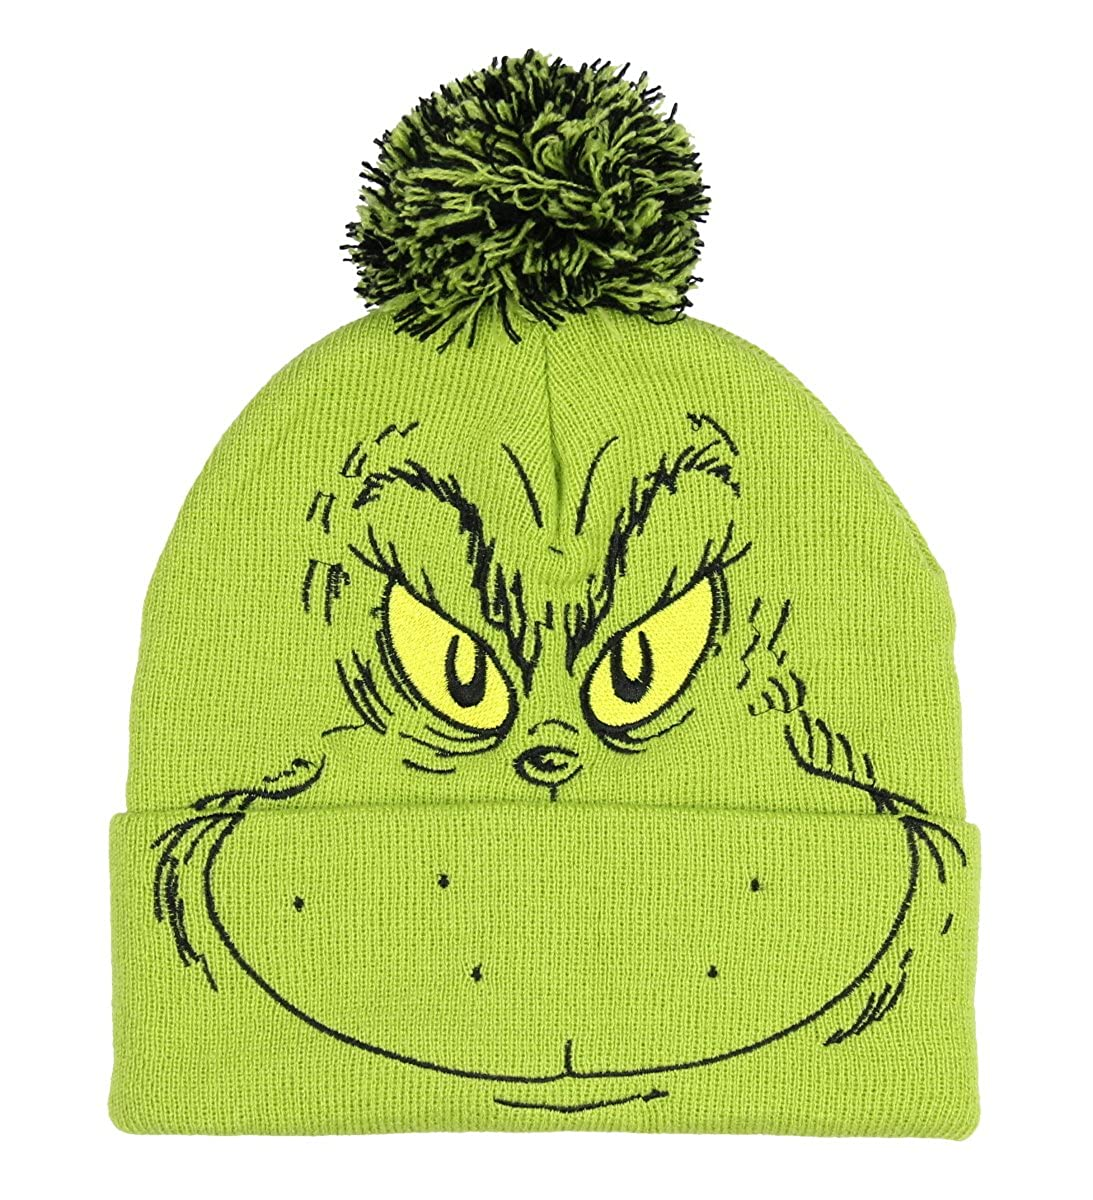 Dr. Seuss The Grinch Who Stole Christmas Pom Beanie Hat Embroidered Character Bioworld